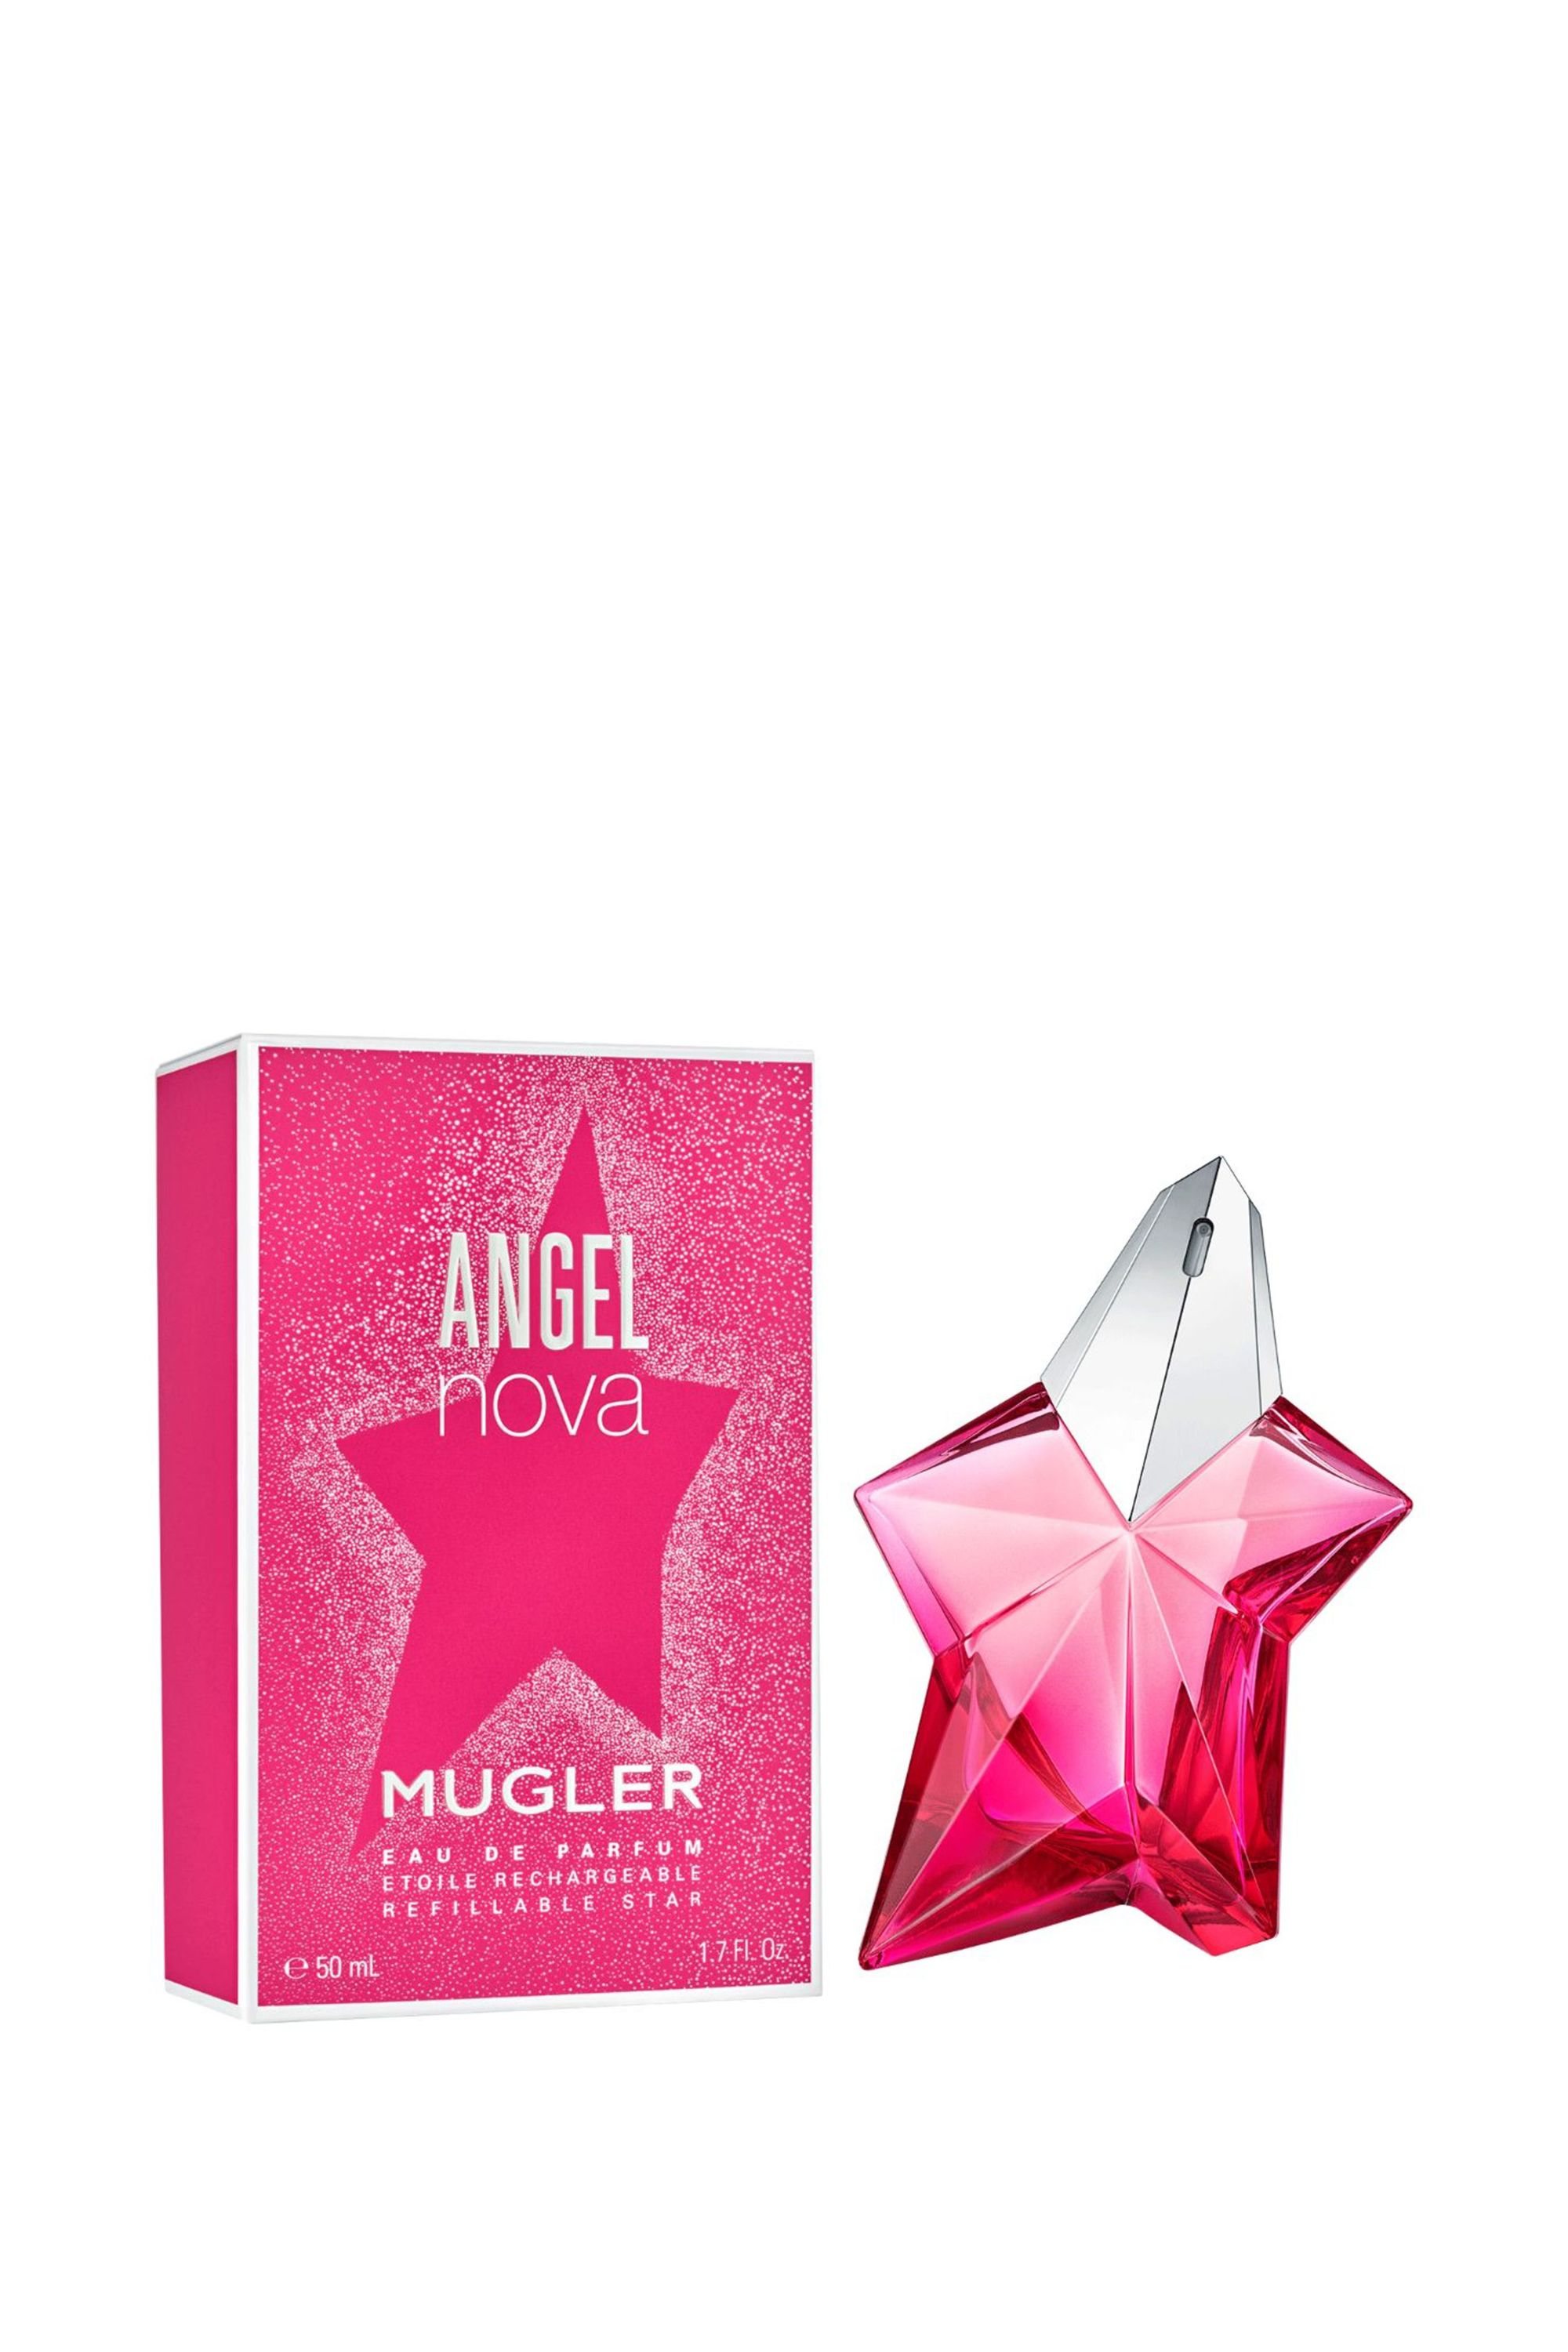 Blissim : Mugler - Eau de parfum Angel Nova - 50ml